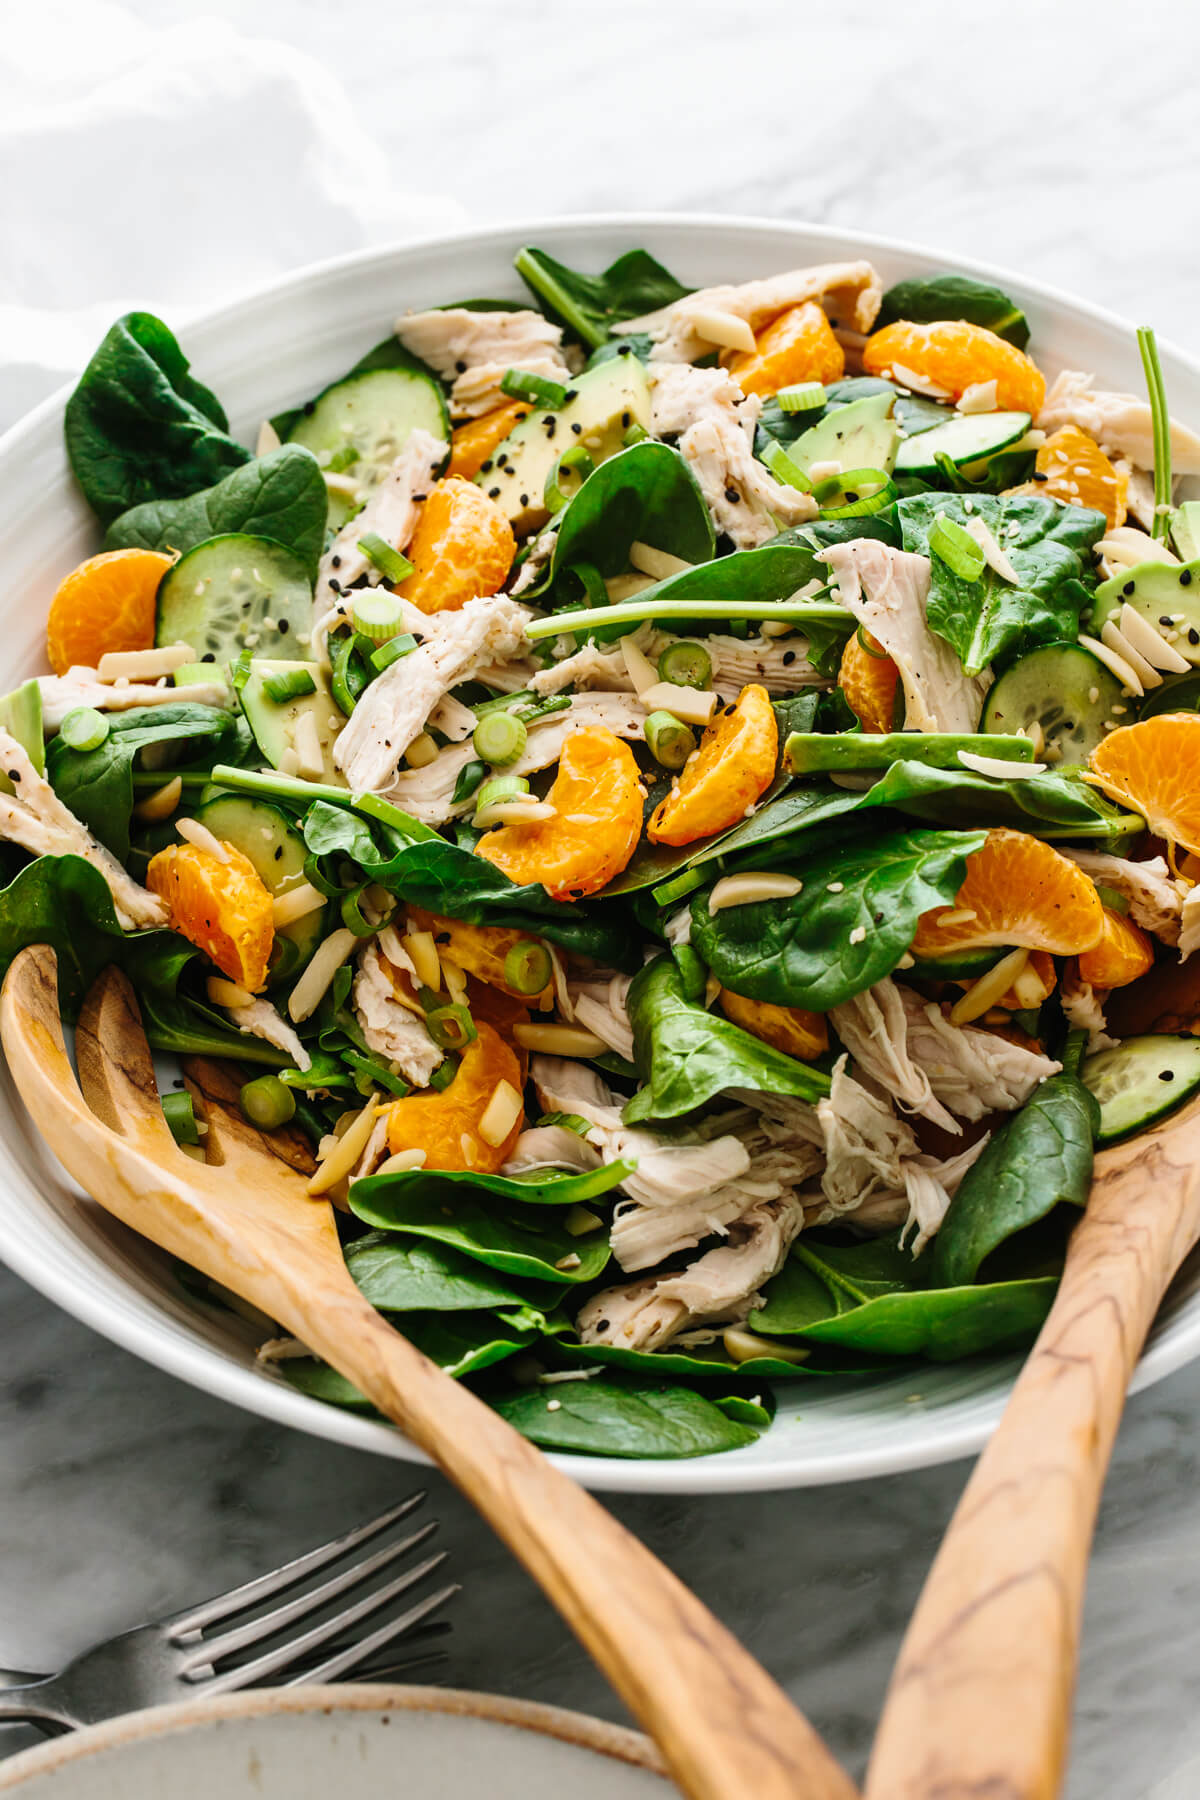 Mandarin chicken salad in a bowl with serving spoons.